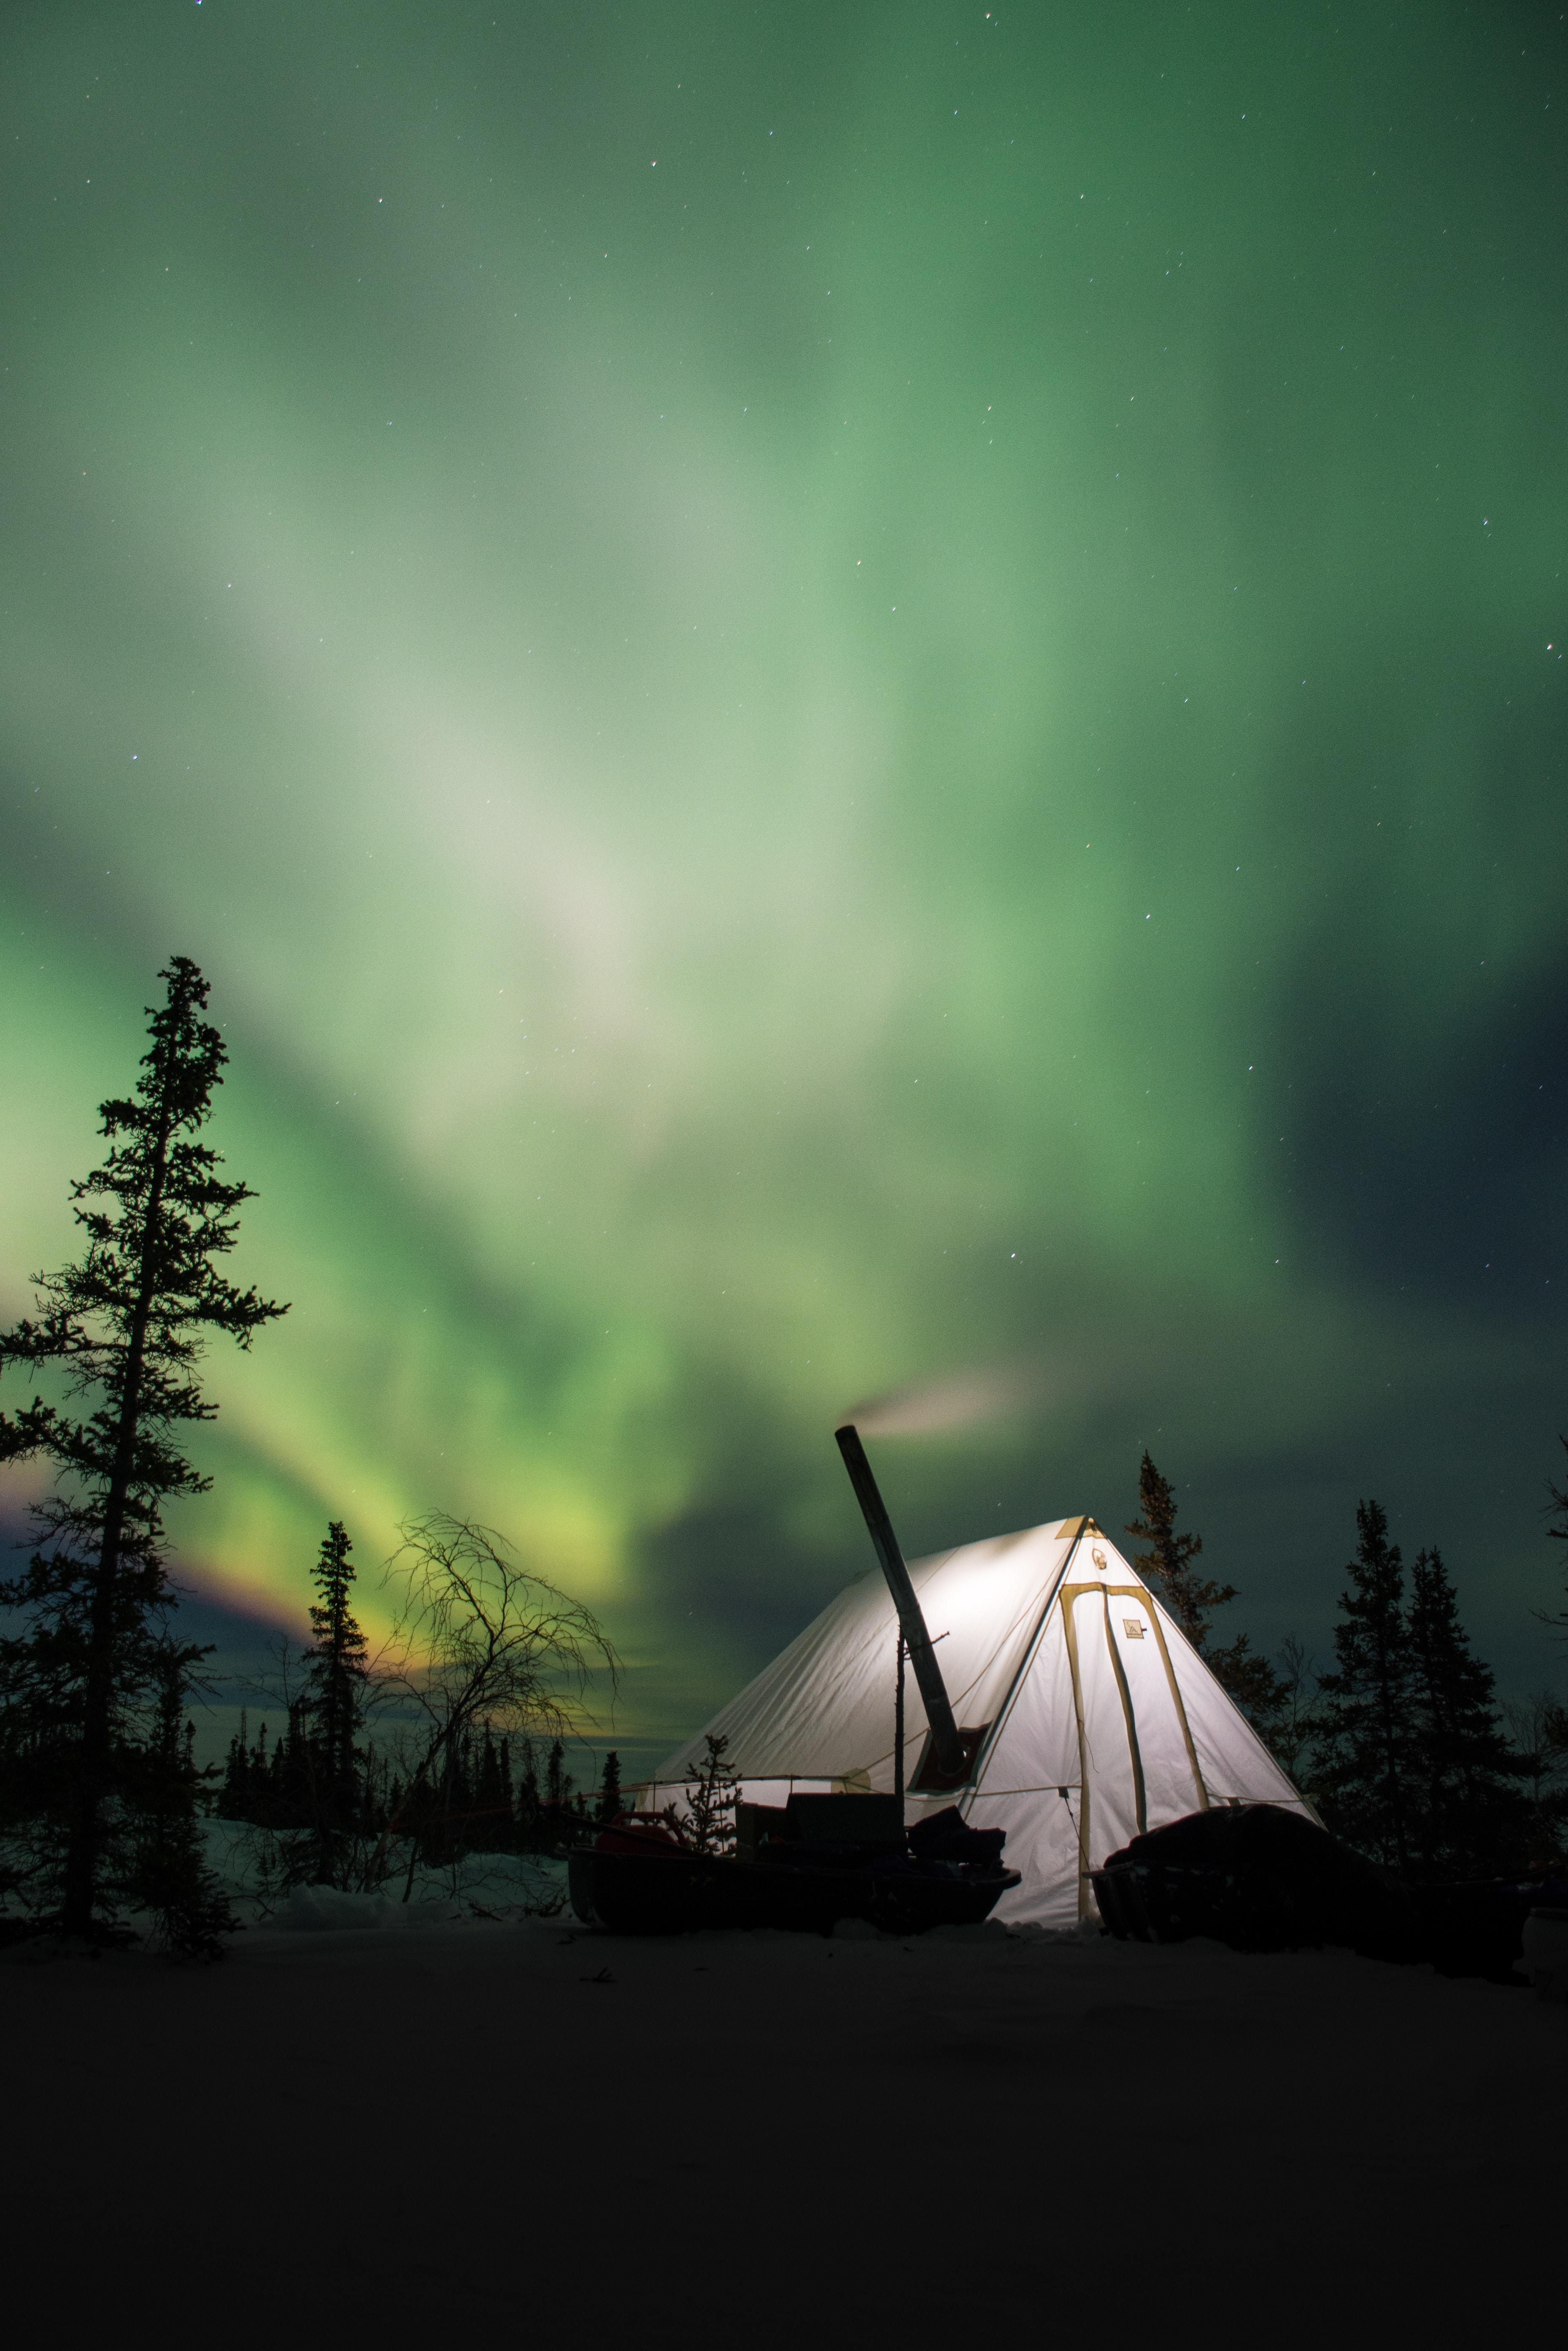 128572 download wallpaper Nature, Night, Northern Lights, Aurora Borealis, Aurora, Tent, Camping, Campsite screensavers and pictures for free